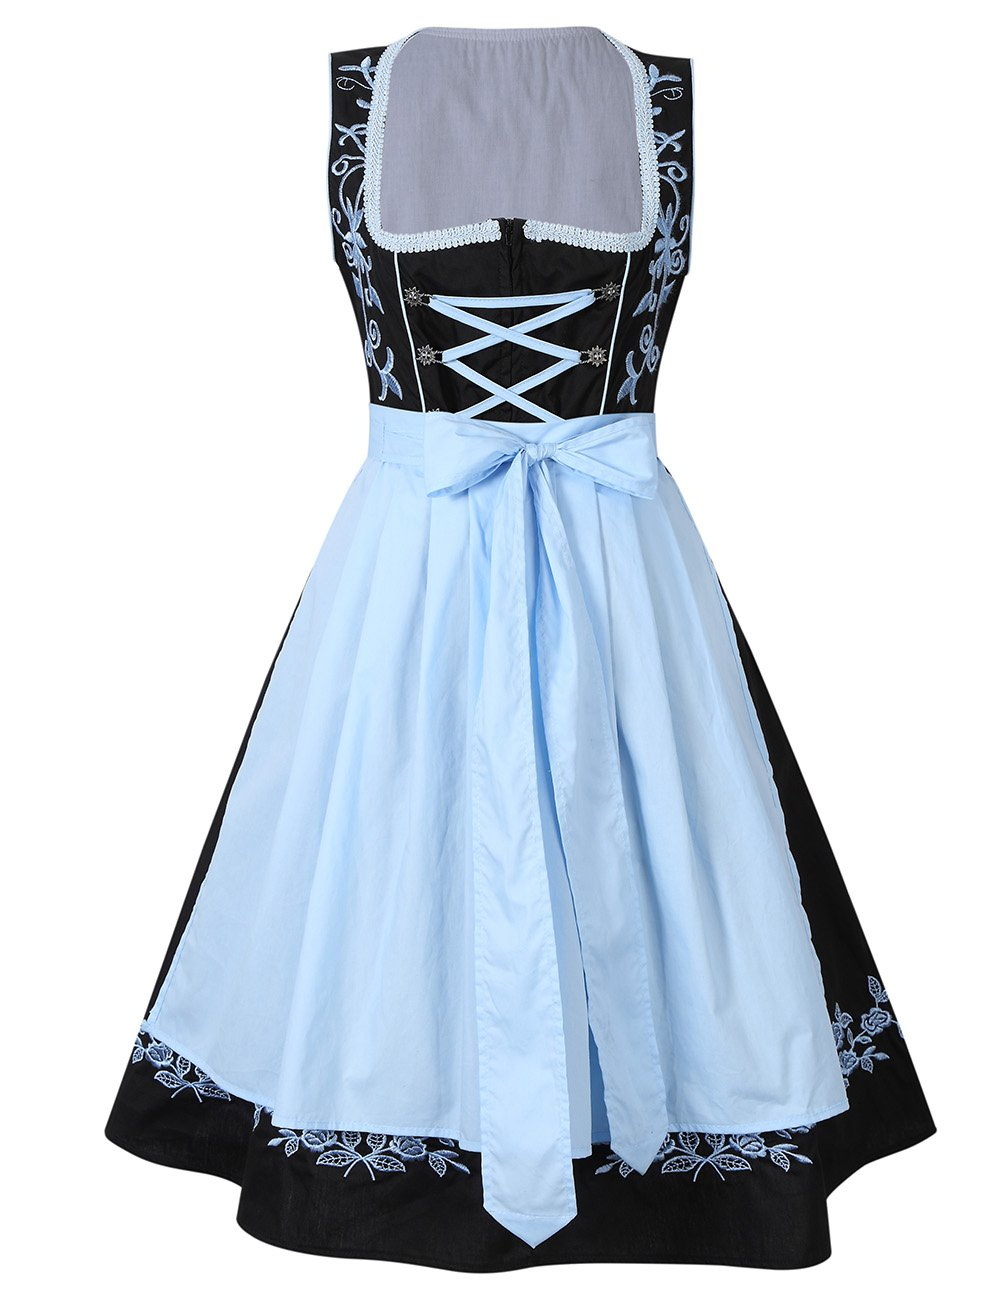 Leoie Kojooin Women 2 Pcs Costumes Embroidery Oktoberfest Dirndl Dress Black 40